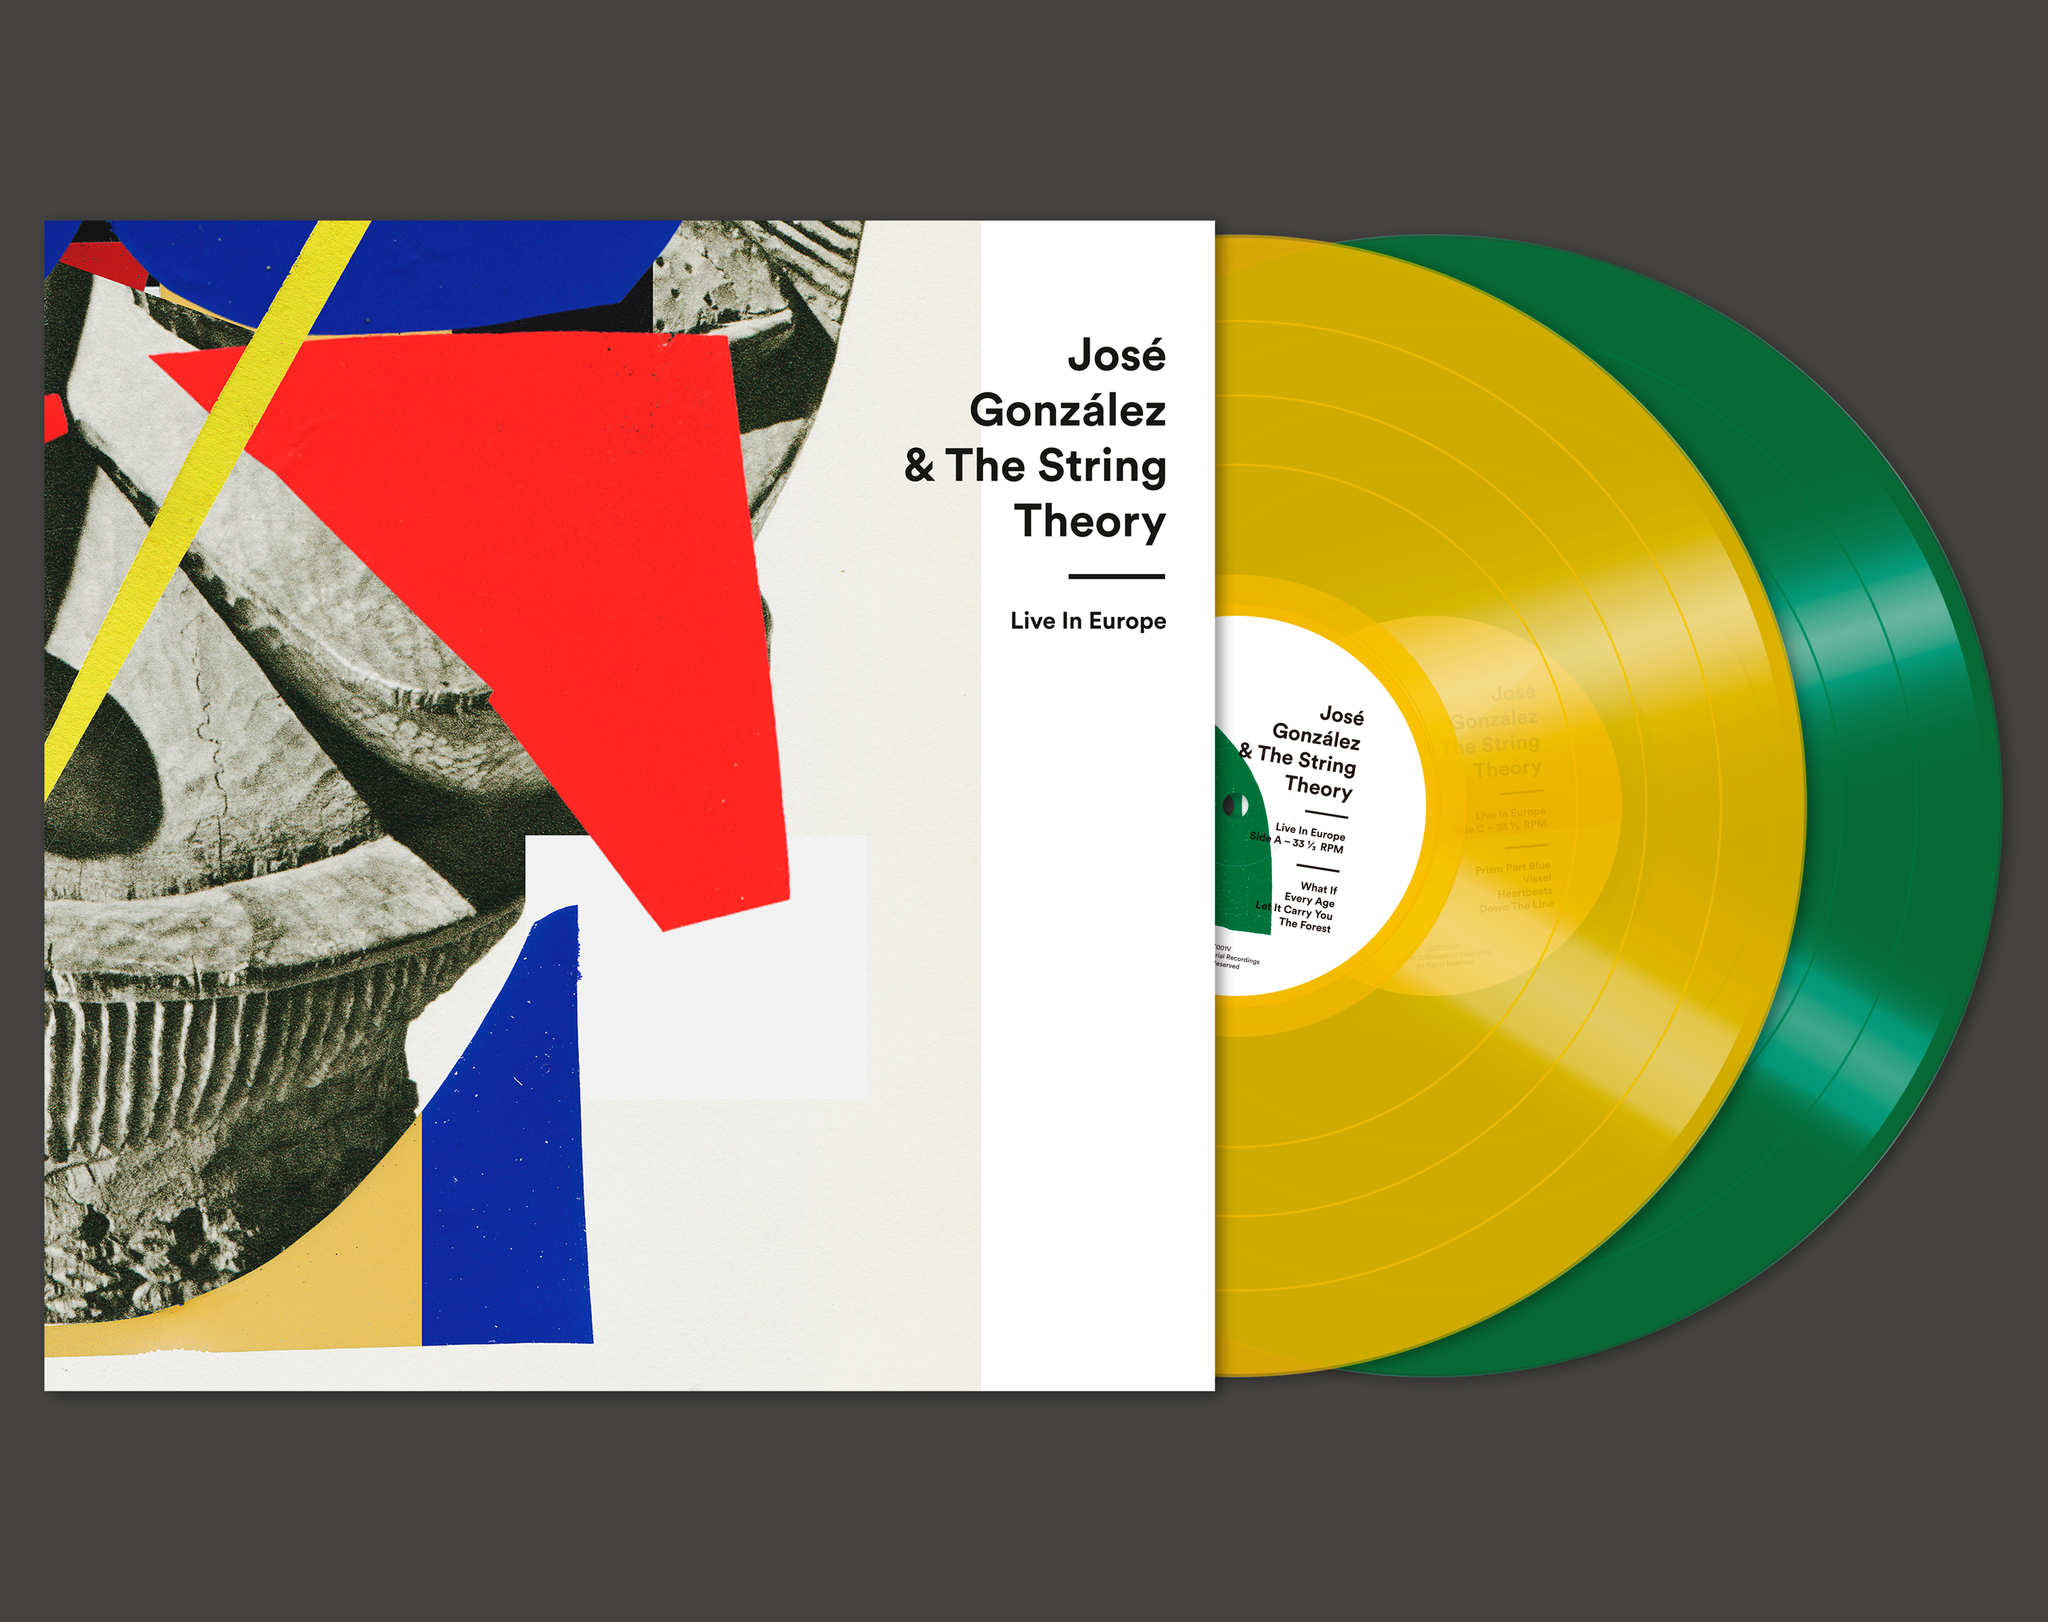 JOSÈ GONZÀLEZ & THE STRING THEORY LIVE IN EUROPE VINYL BOXSET LIMITED EDITION